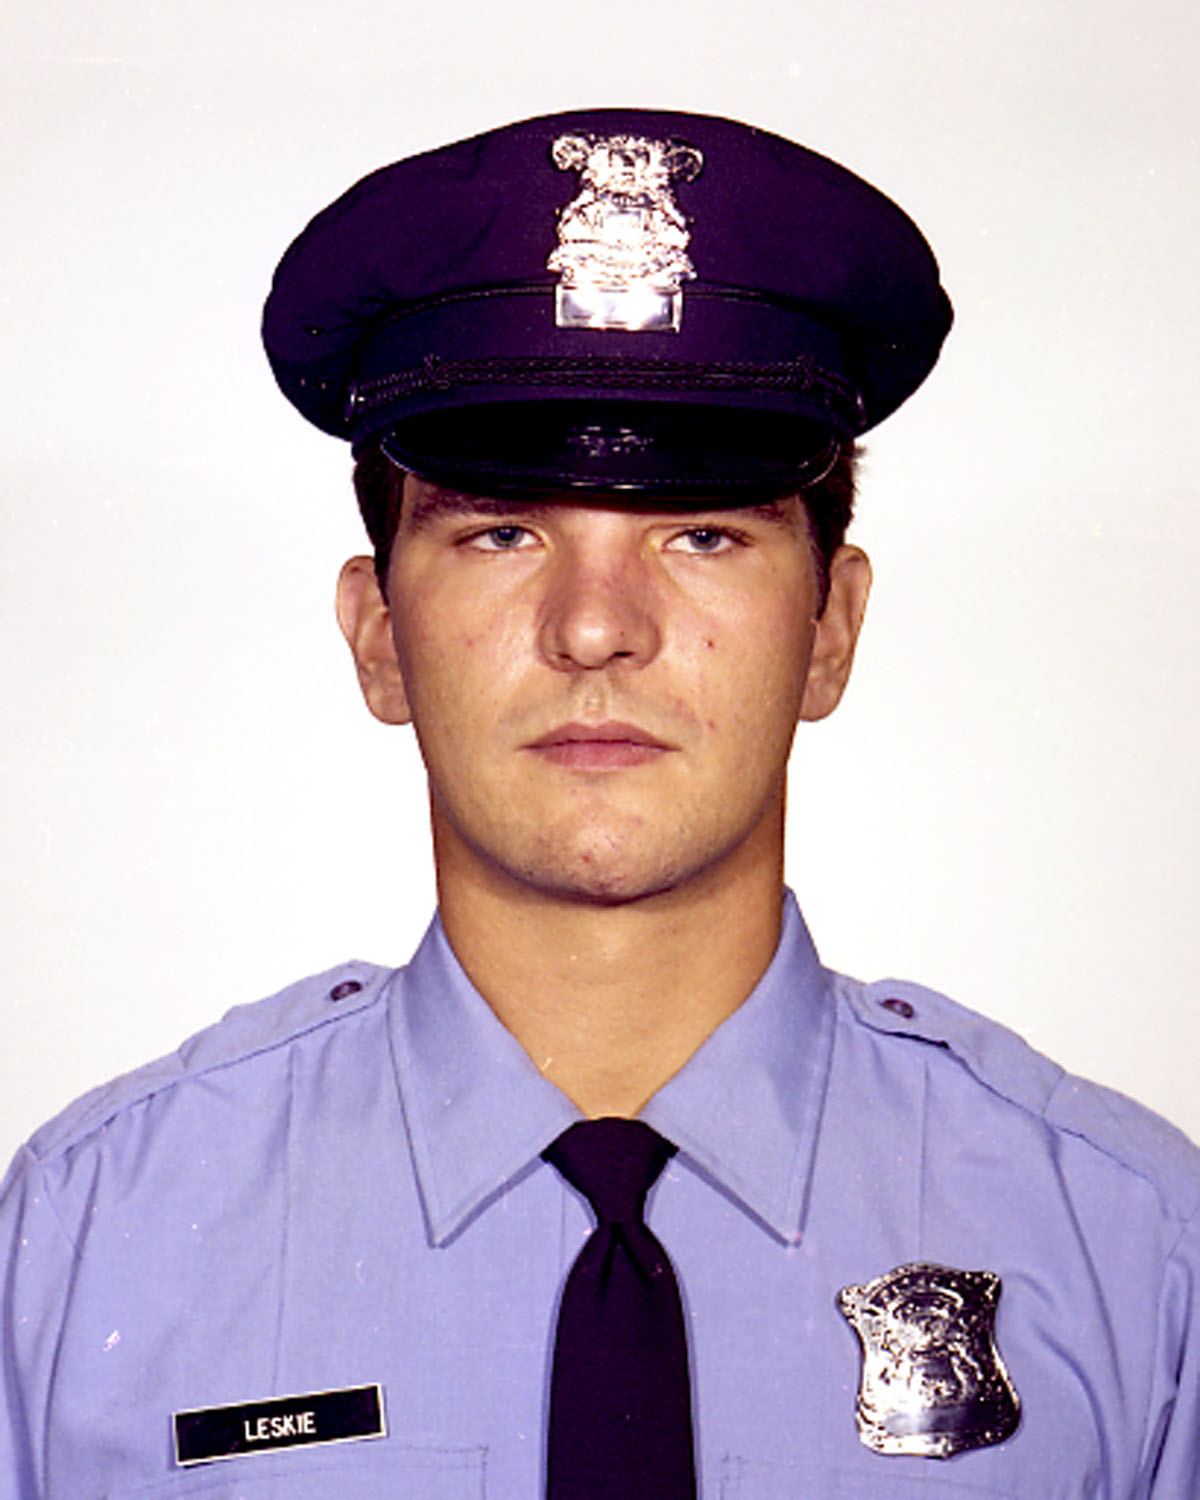 Police Officer Richard Michael Leskie | Detroit Police Department, Michigan